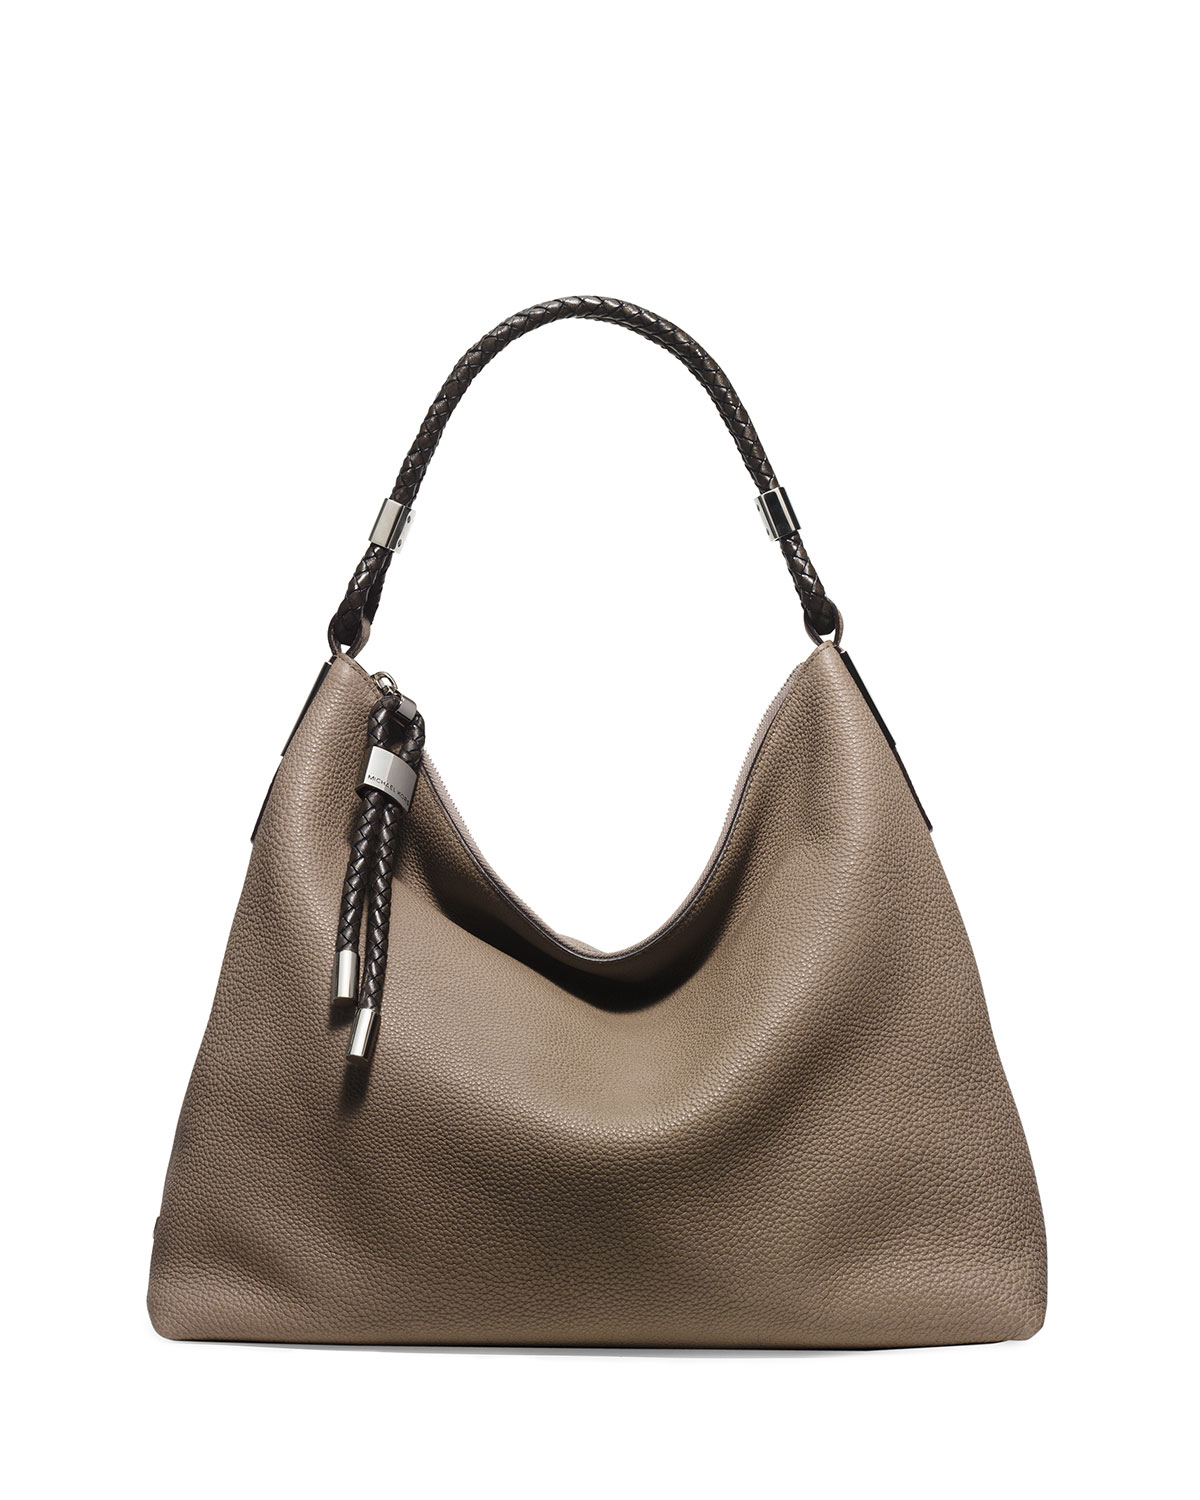 michael kors skorpios woven trim hobo bag in brown lyst. Black Bedroom Furniture Sets. Home Design Ideas